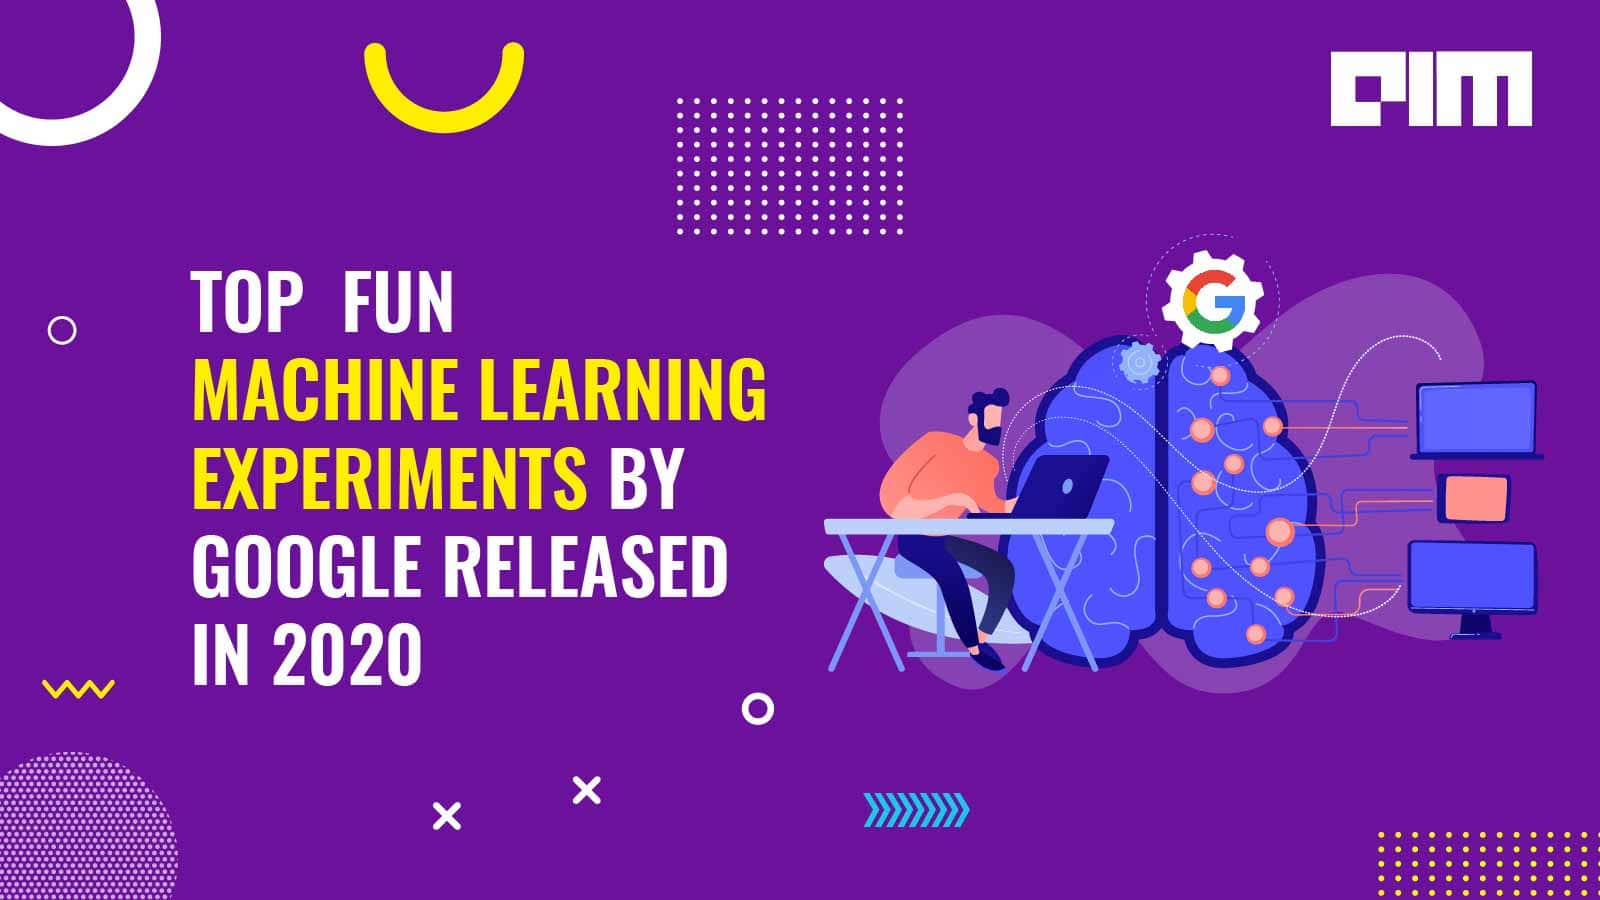 Top 10 Fun Machine Learning Experiments By Google Released in 2020